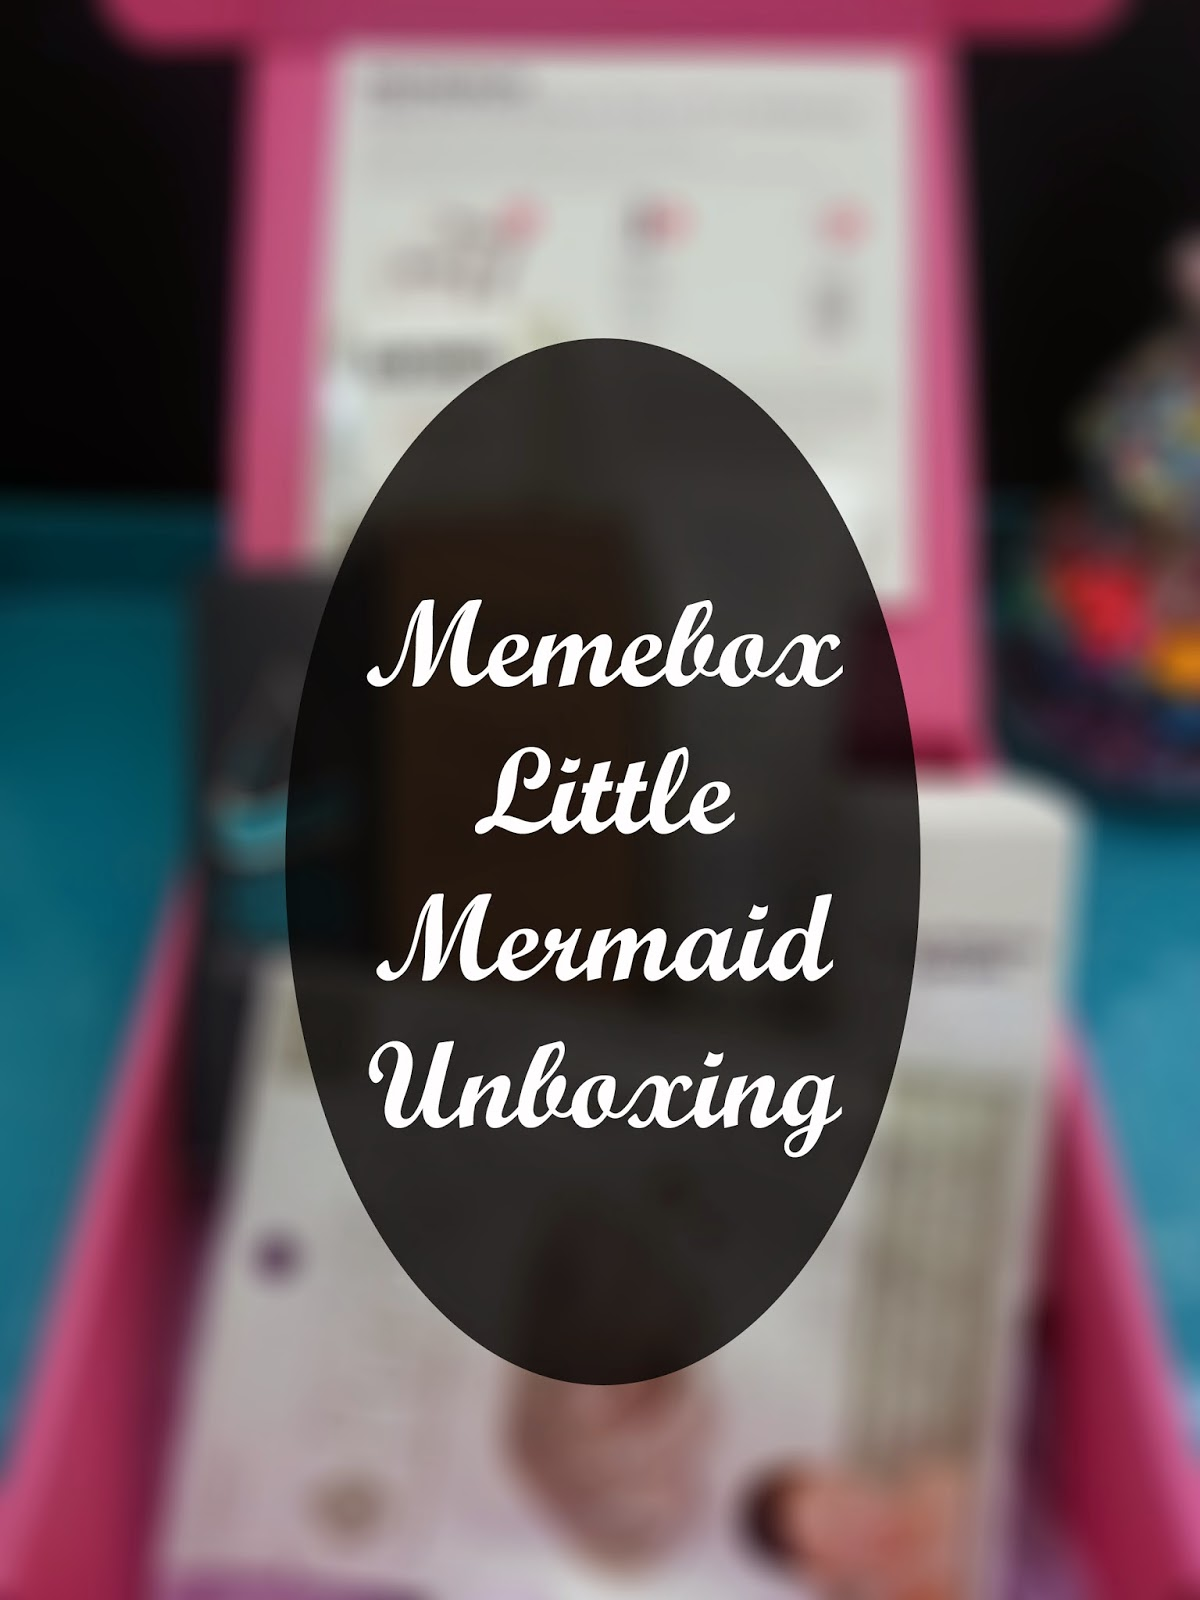 Unboxing: Memebox The Little Mermaid